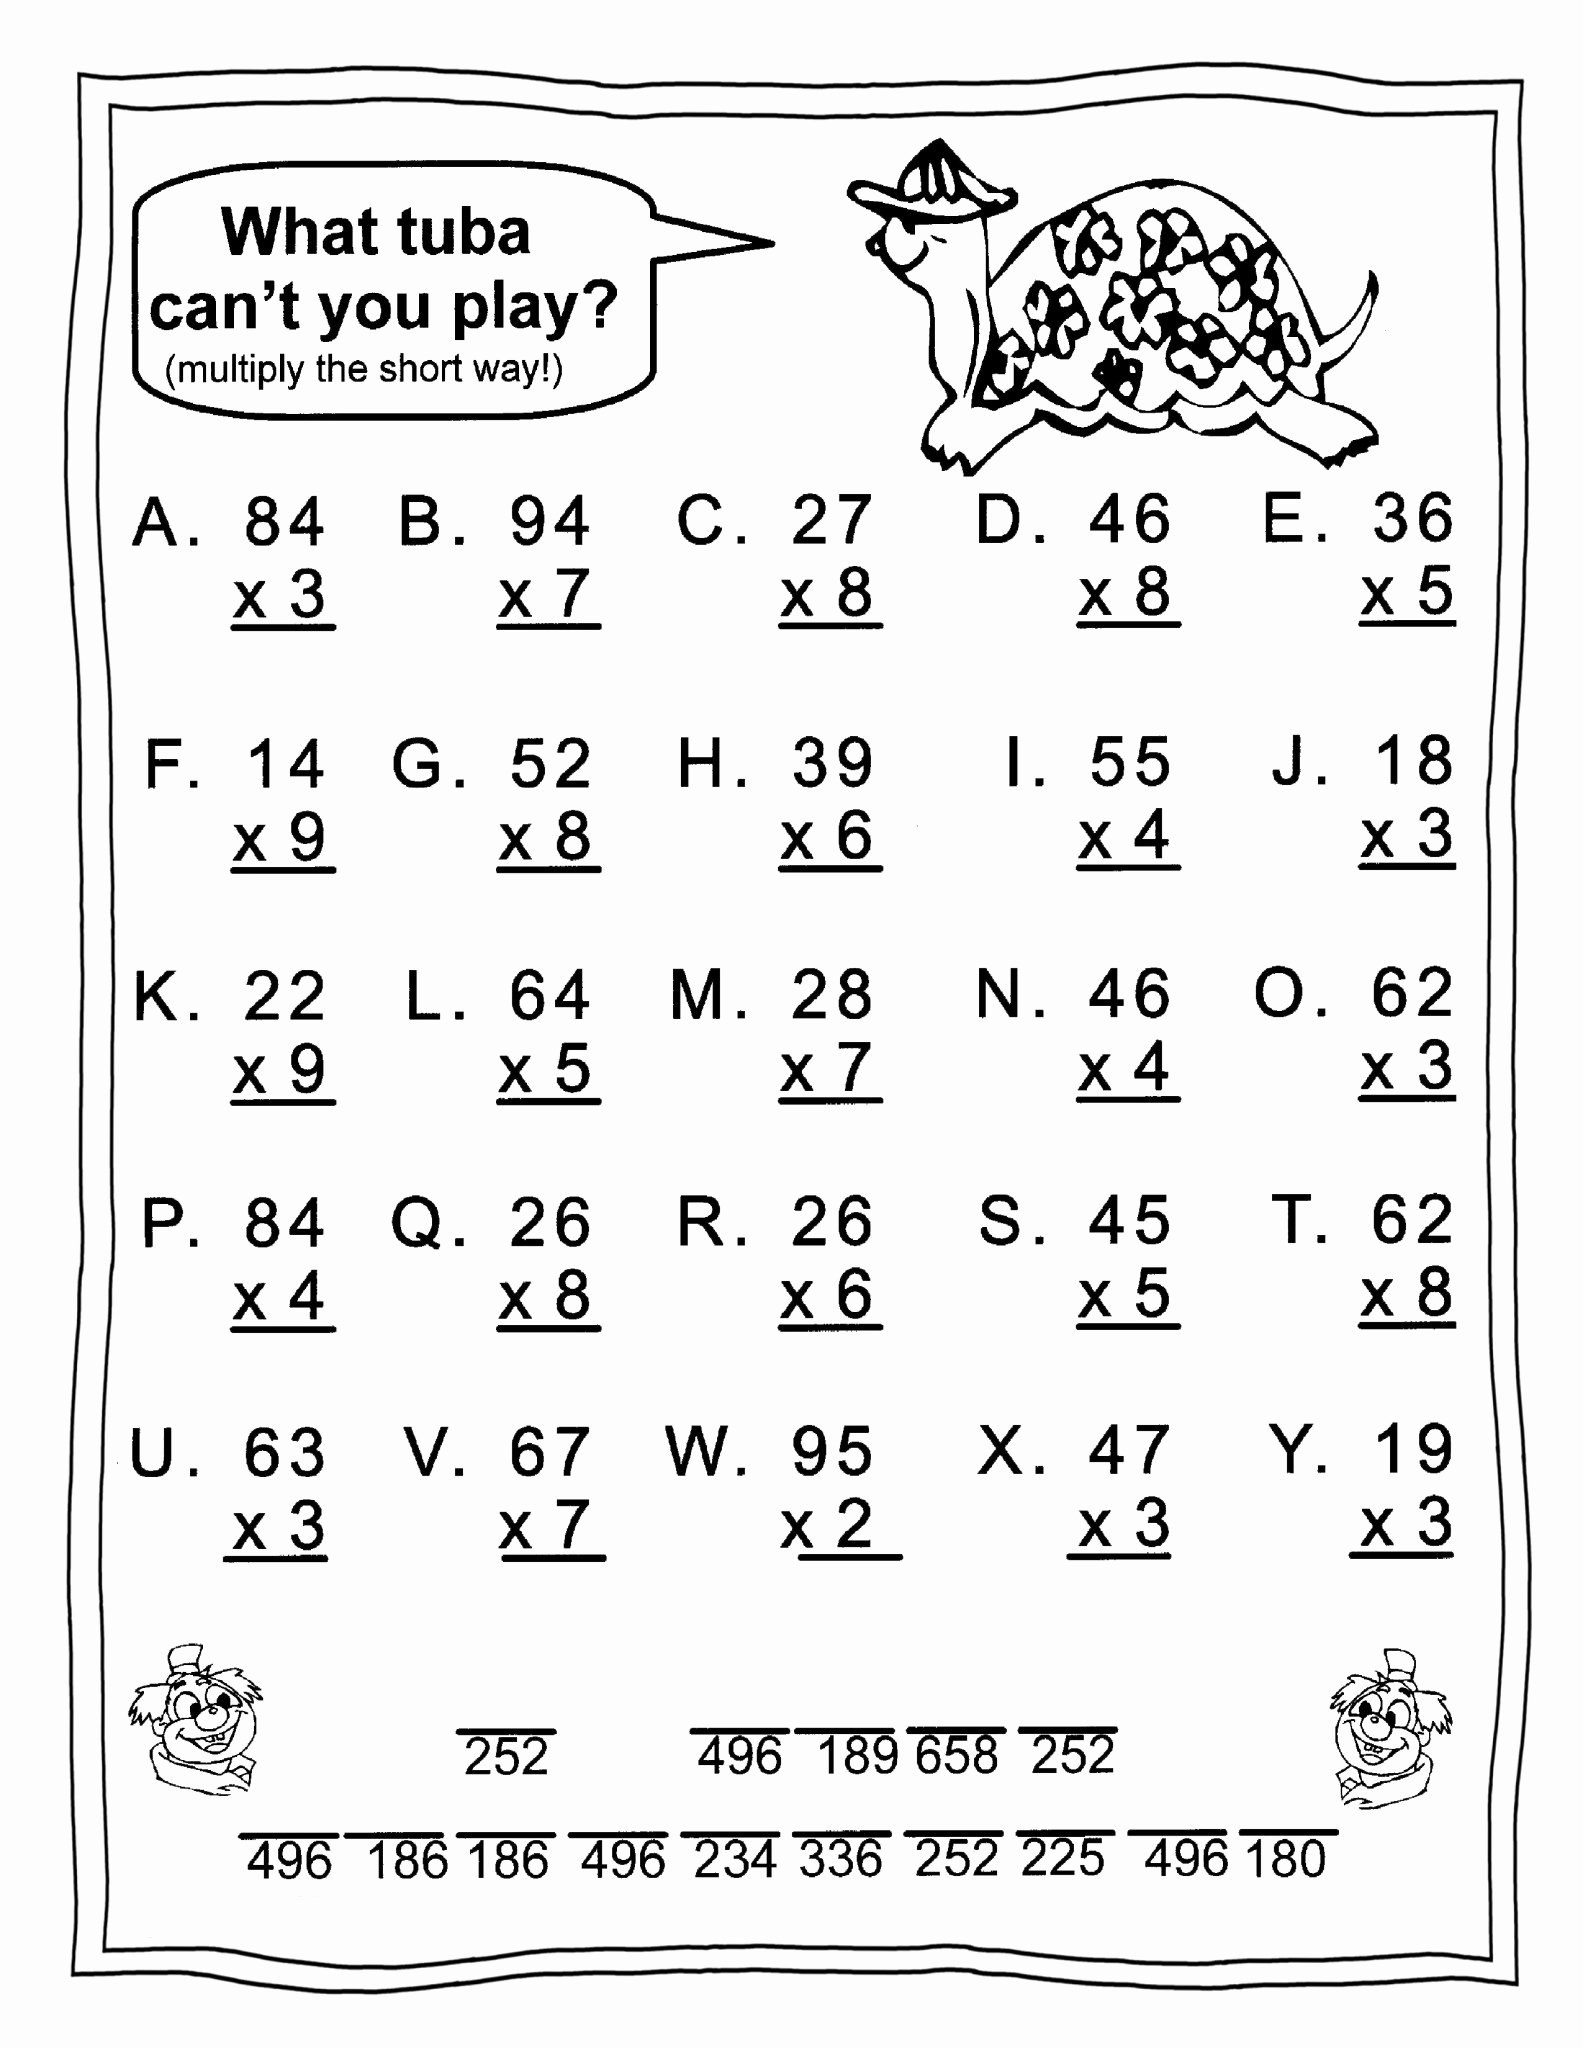 Free Printable 3rd Grade Multiplication Worksheets Fresh Worksheets 3rd Grade Math Worksheets Best Coloring for